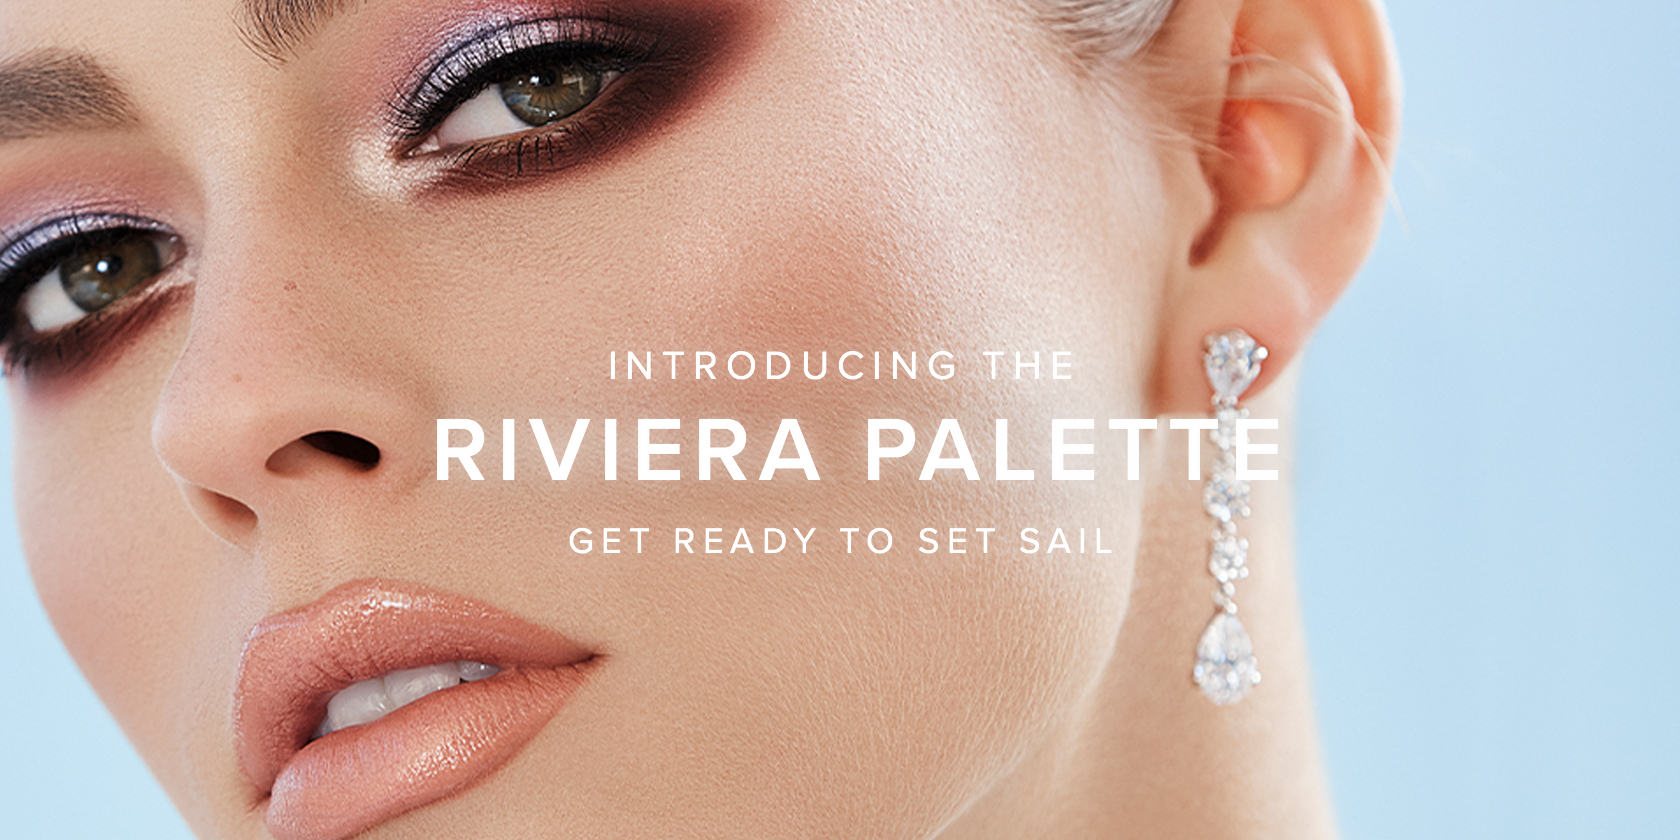 introducing the riviera pallet, get ready to set sail